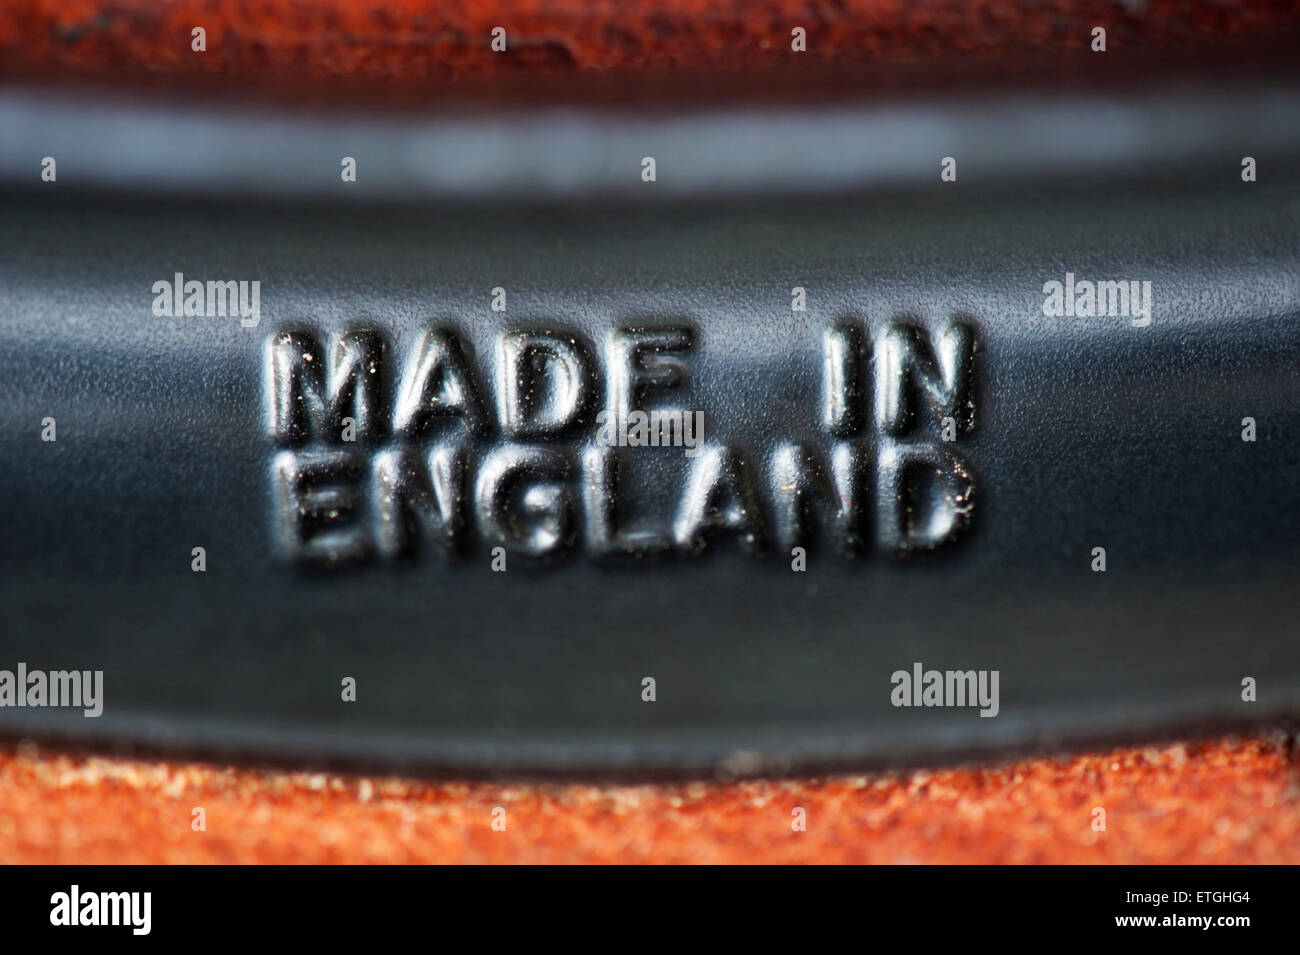 Made in England sign on a Brooks leather saddle for bicycle - Stock Image